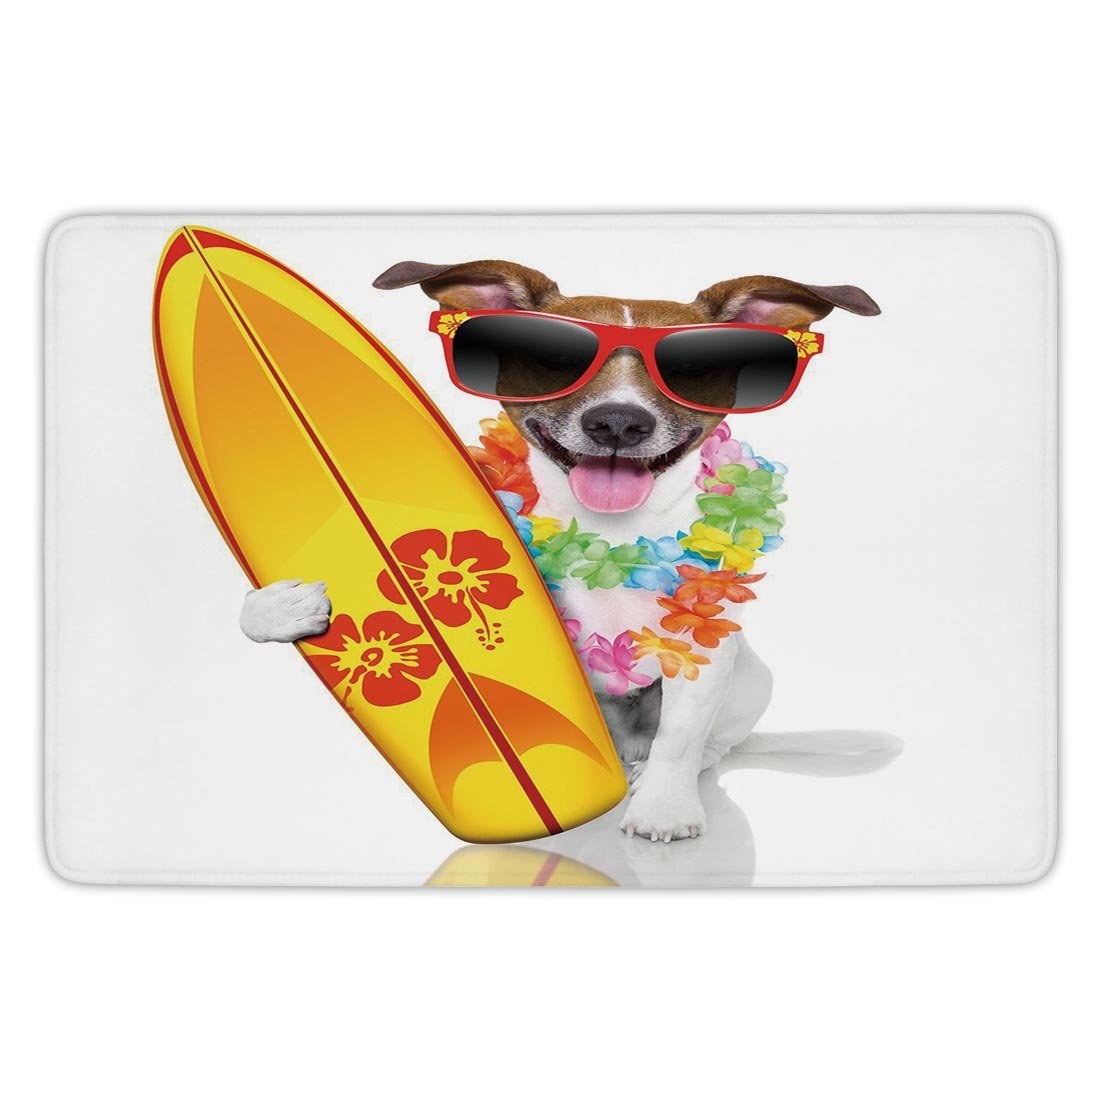 Bathroom Bath Rug Kitchen Floor Mat Carpet,Ride The Wave,Surfer Puppy with Sunglasses and Tropical Hibiscus Flowers Hawaiian Dog Print,Multicolor,Flannel Microfiber Non-slip Soft Absorbent